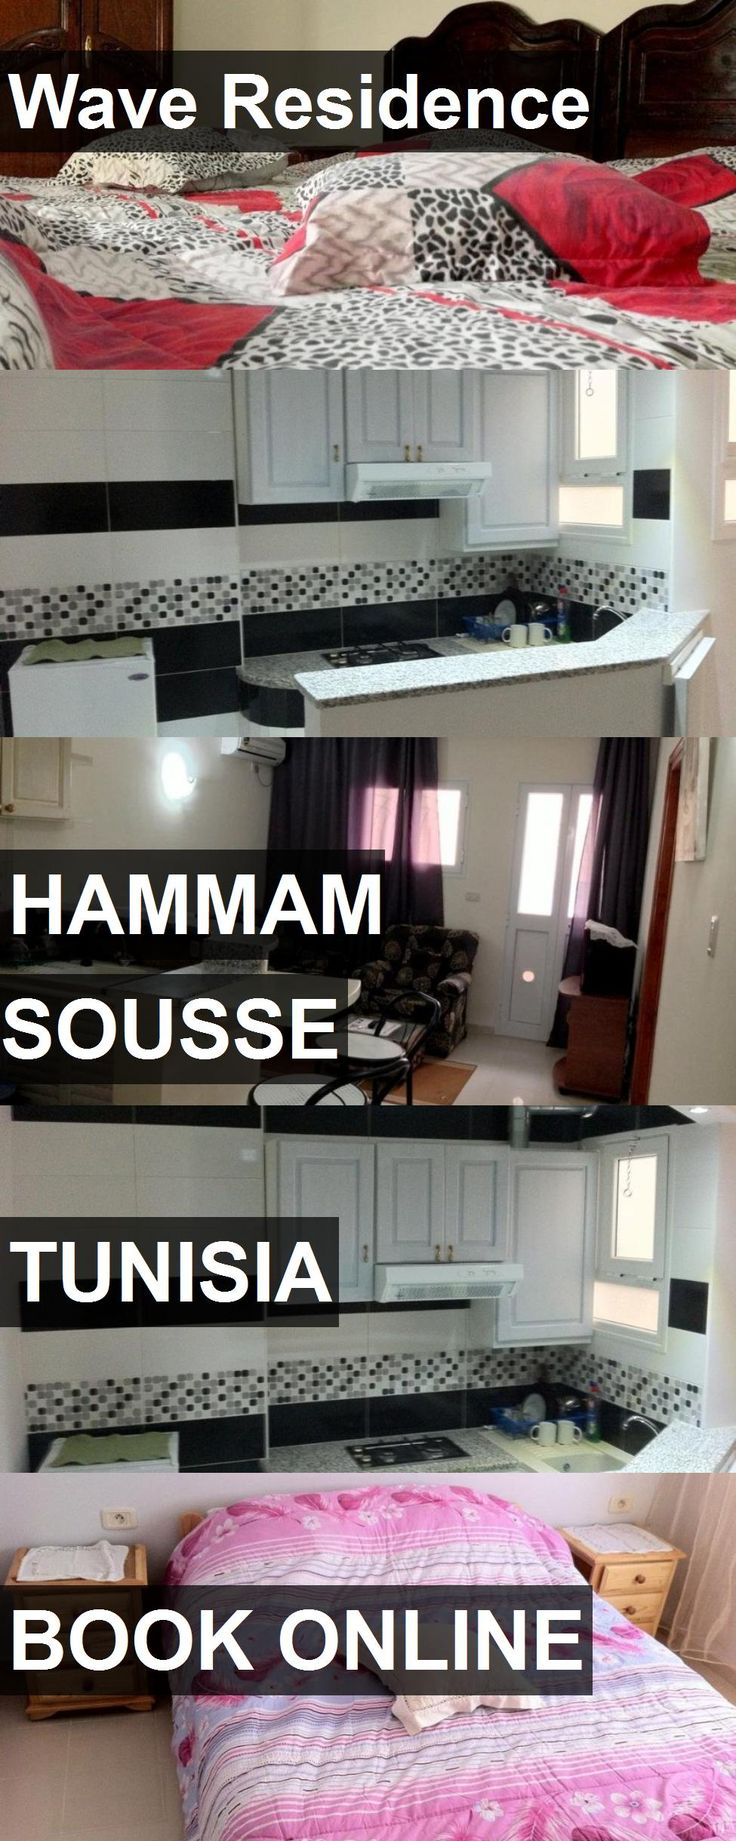 Hotel Wave Residence in Hammam Sousse, Tunisia. For more information, photos, reviews and best prices please follow the link. #Tunisia #HammamSousse #WaveResidence #hotel #travel #vacation